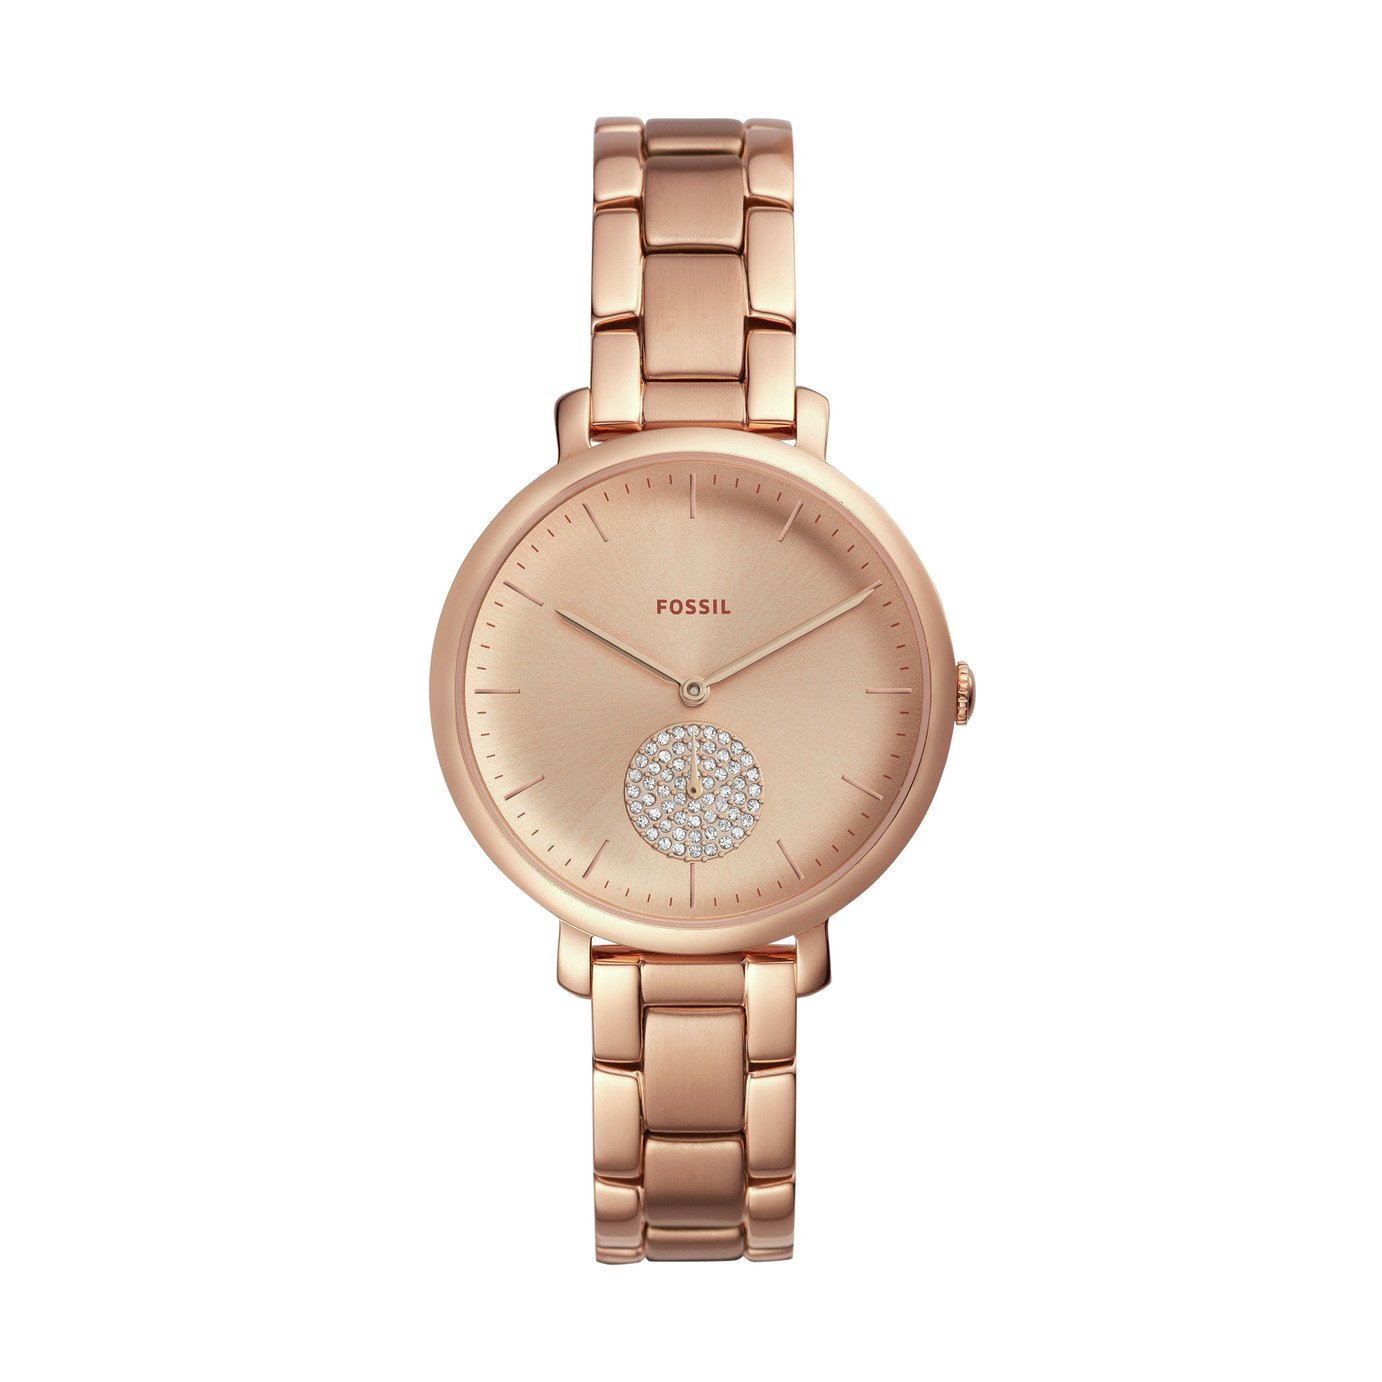 Fossil Ladies Rose Gold Coloured Bracelet Watch